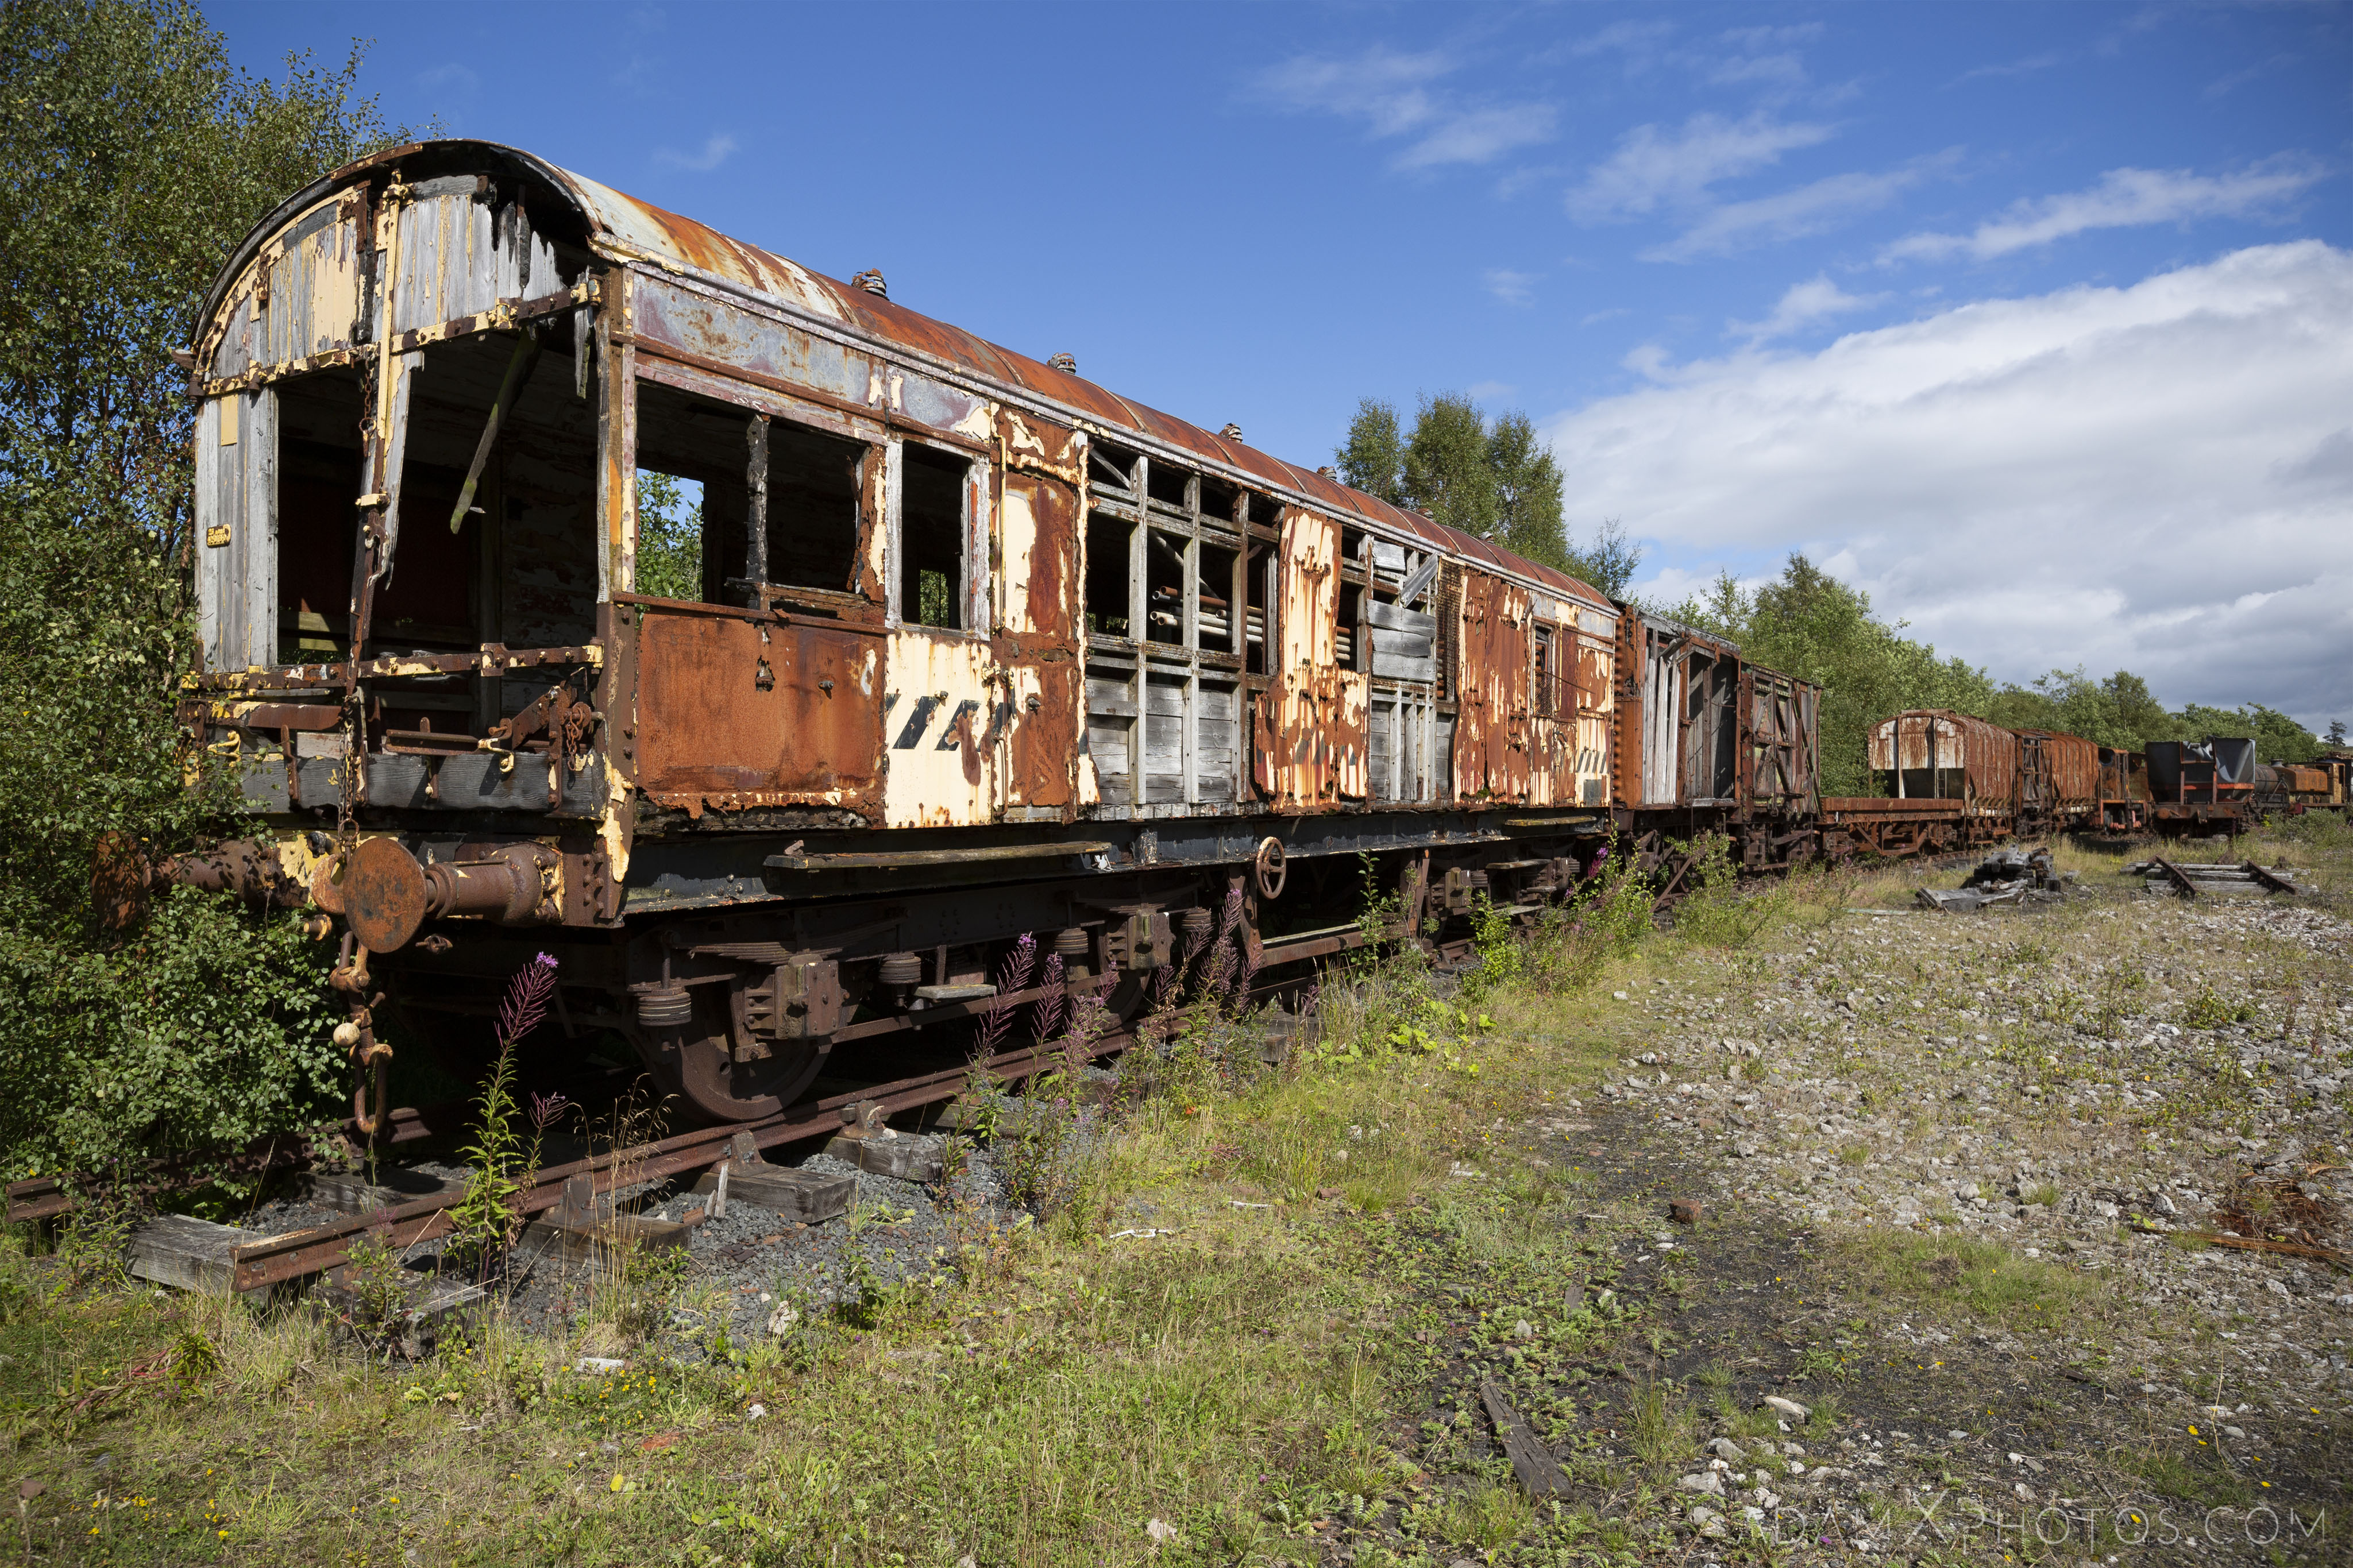 Carriages overgrown Abandoned Trains Waterside Dunaskin Adam X Urbex Urban Exploration Access 2018 Abandoned decay lost forgotten derelict location creepy haunting eerie